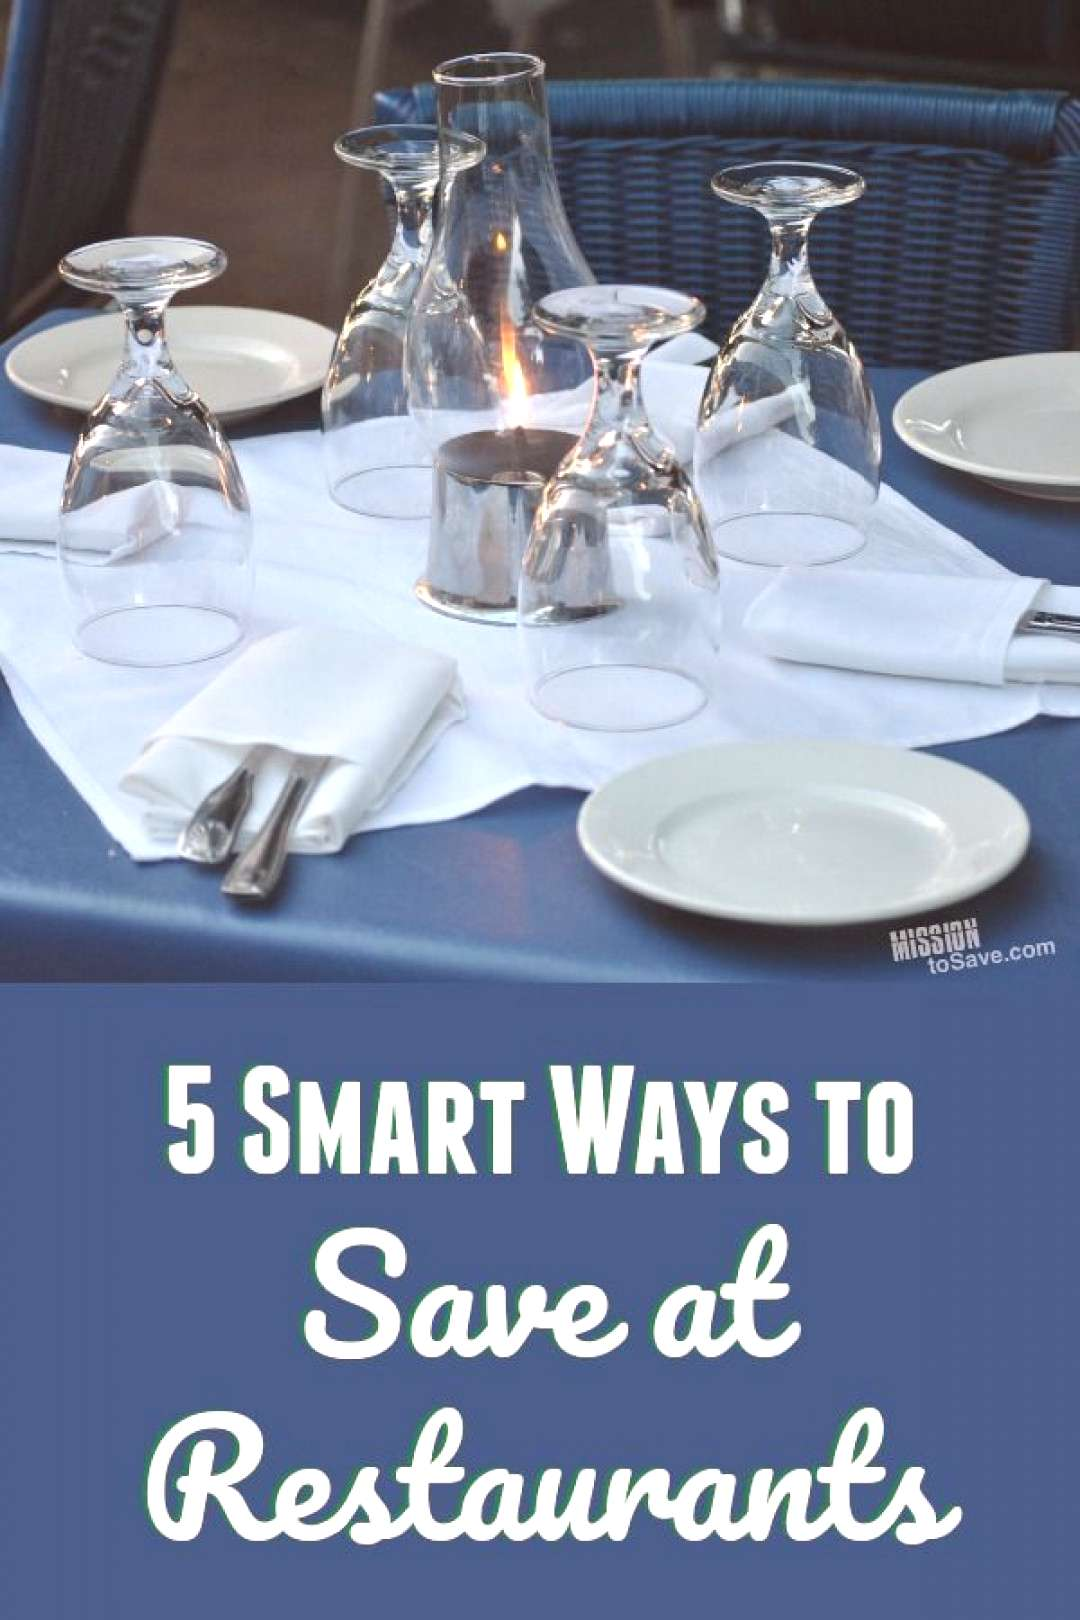 5 Smart Ways to Save at Restaurants If you love to eat out, but don't want it to be a drain on the